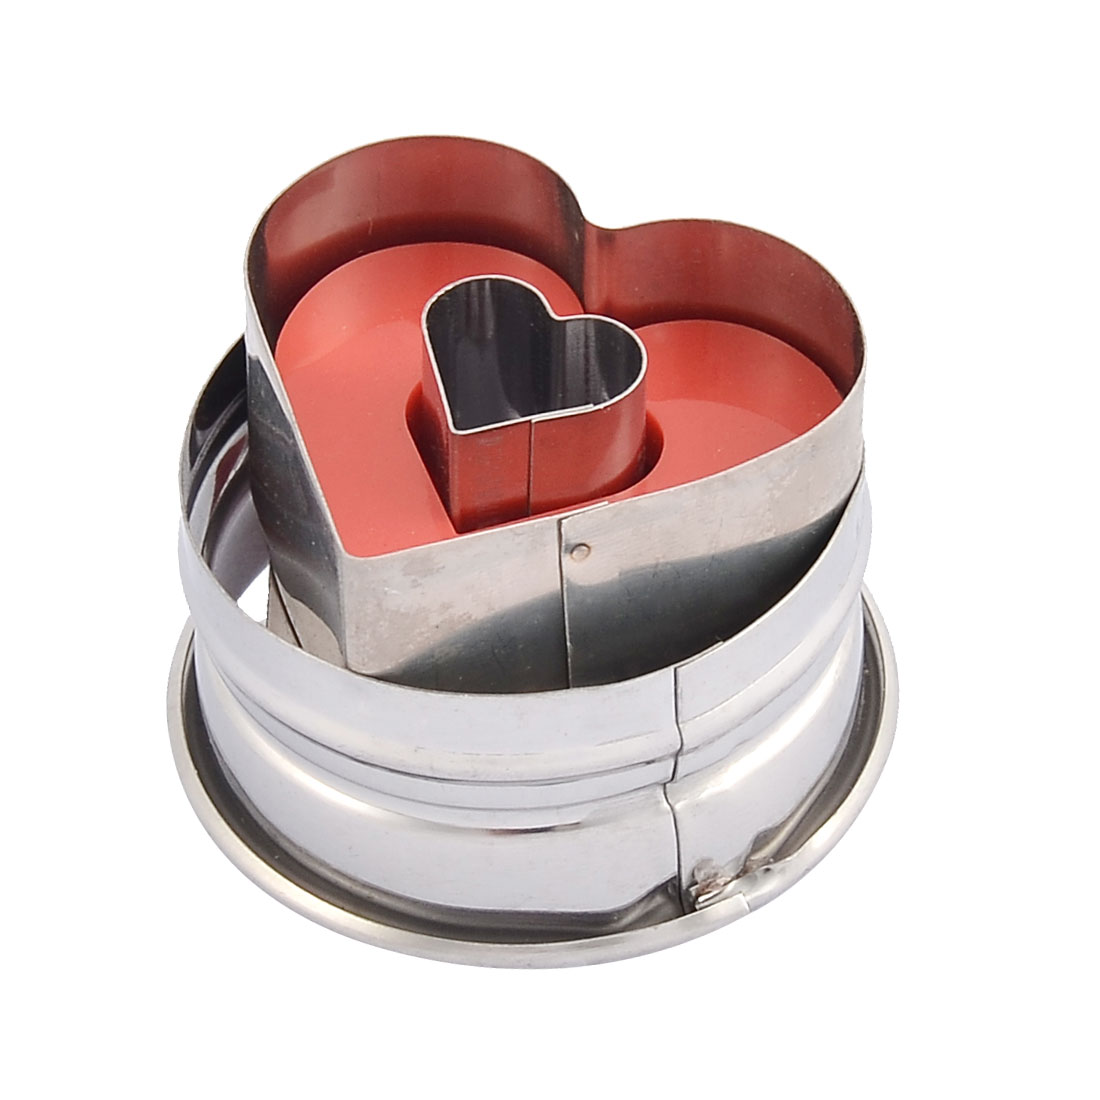 Household Kitchen Metal Frame Heart Shaped Spring Cake Cookie Cutter Mould Mold